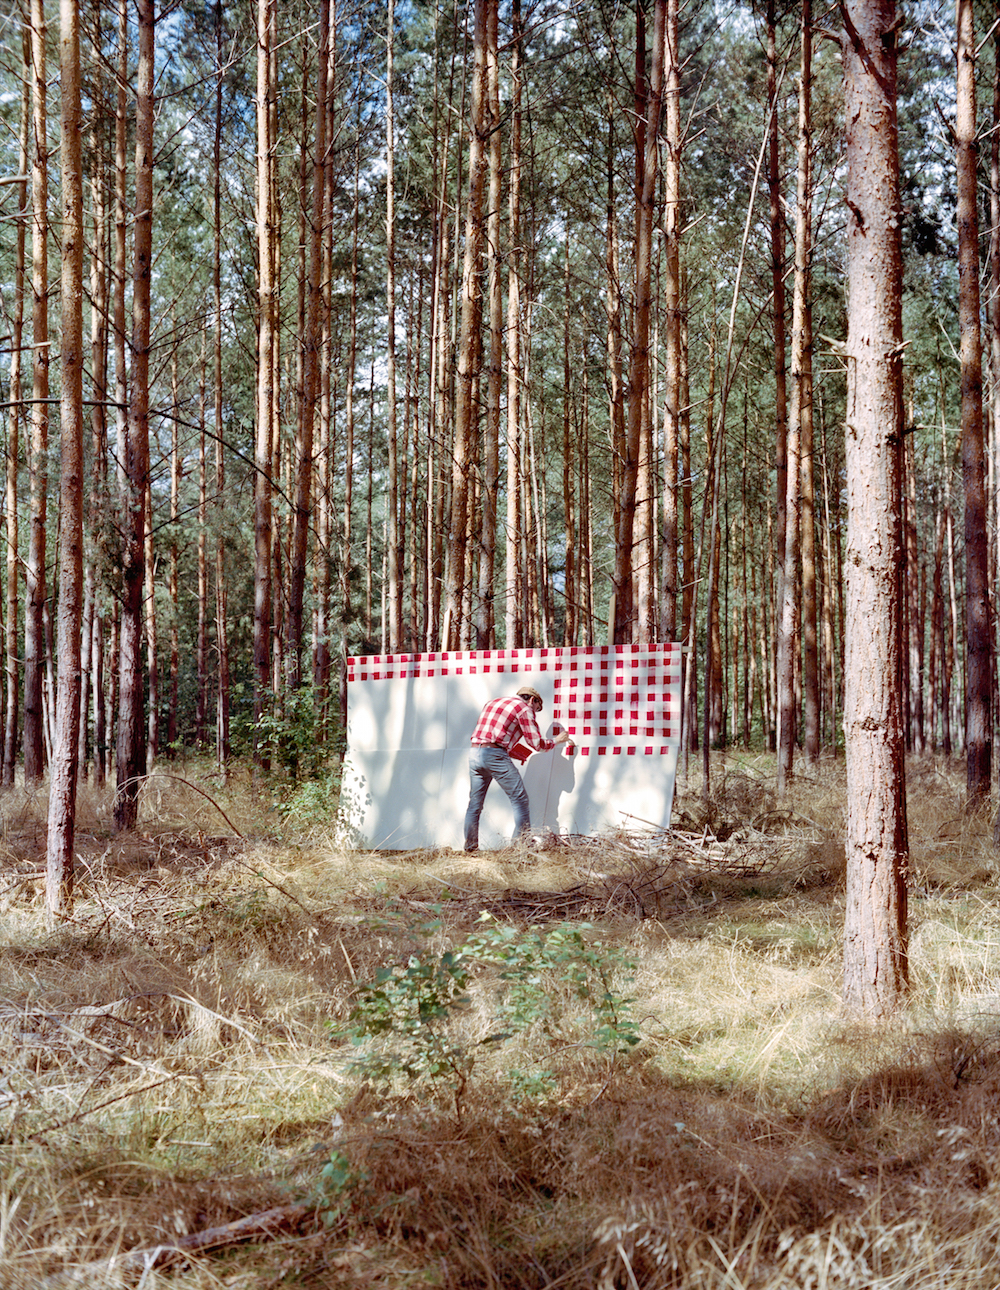 A Collaborative Duo Pokes Fun at Plein Air Painting Through Photographic Series